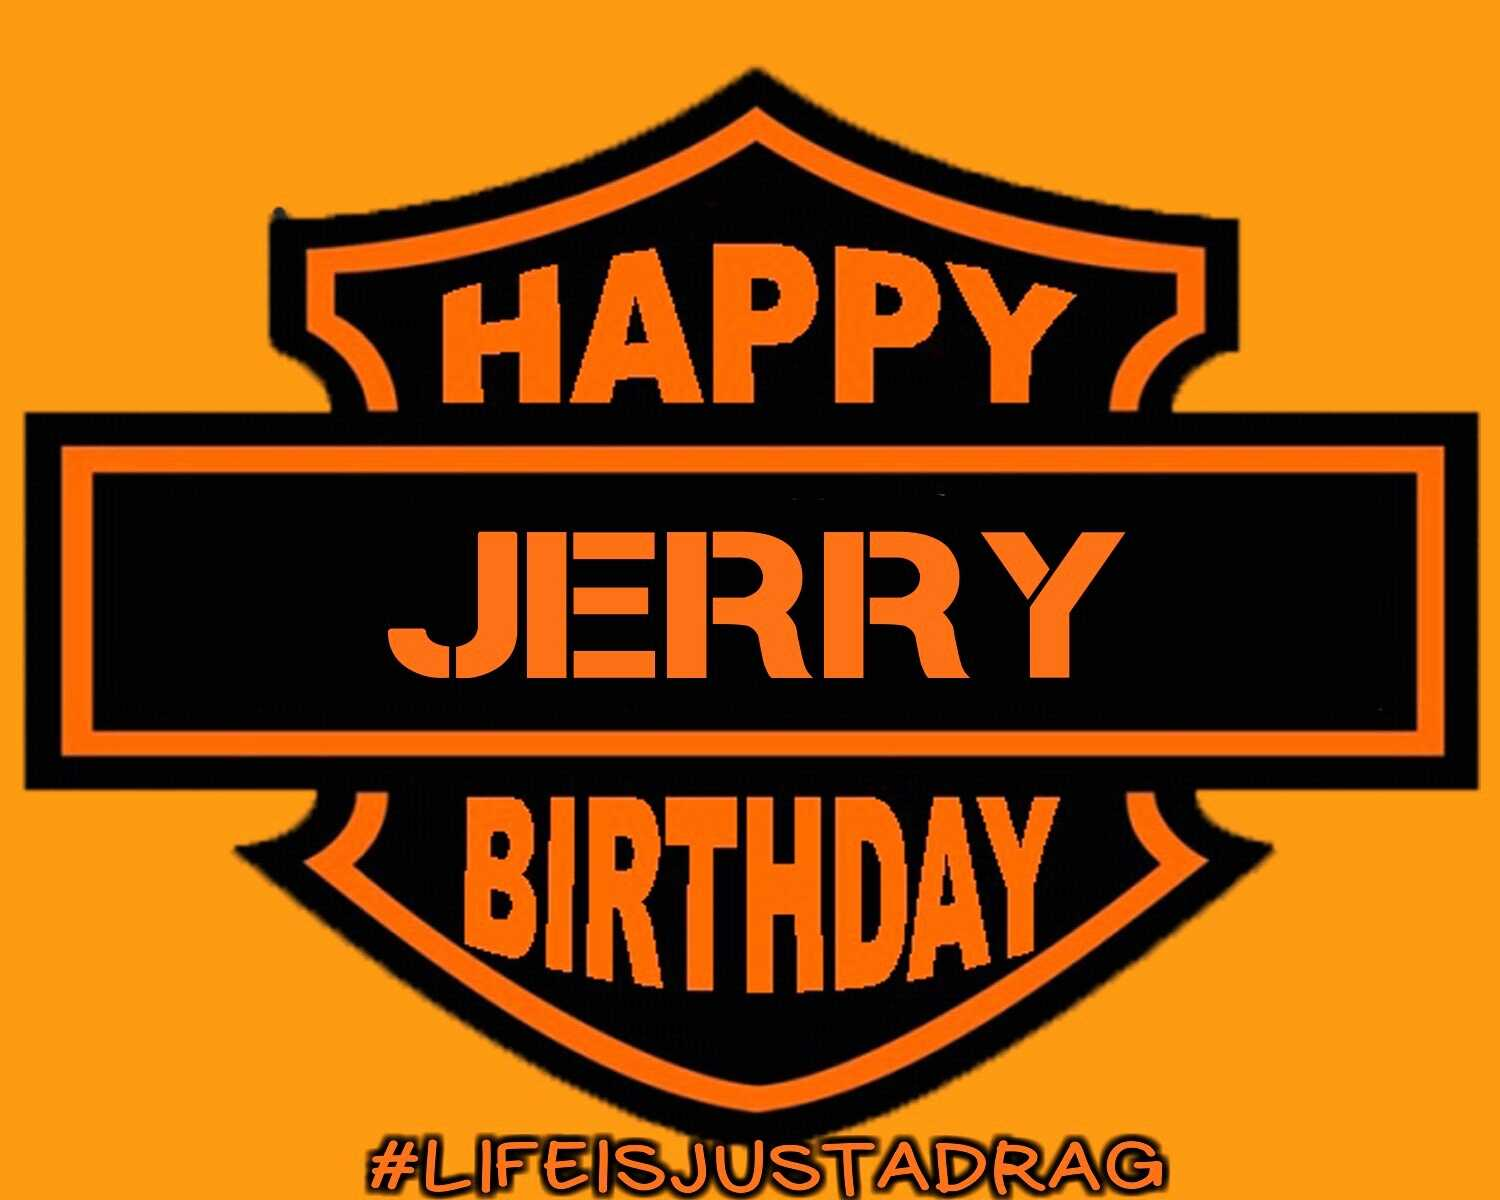 happy birthday harley davidson pictures ; harley-davidson-birthday-wishes-luxury-happy-birthday-jerry-harley-davidson-happy-birthday-jerry-of-harley-davidson-birthday-wishes